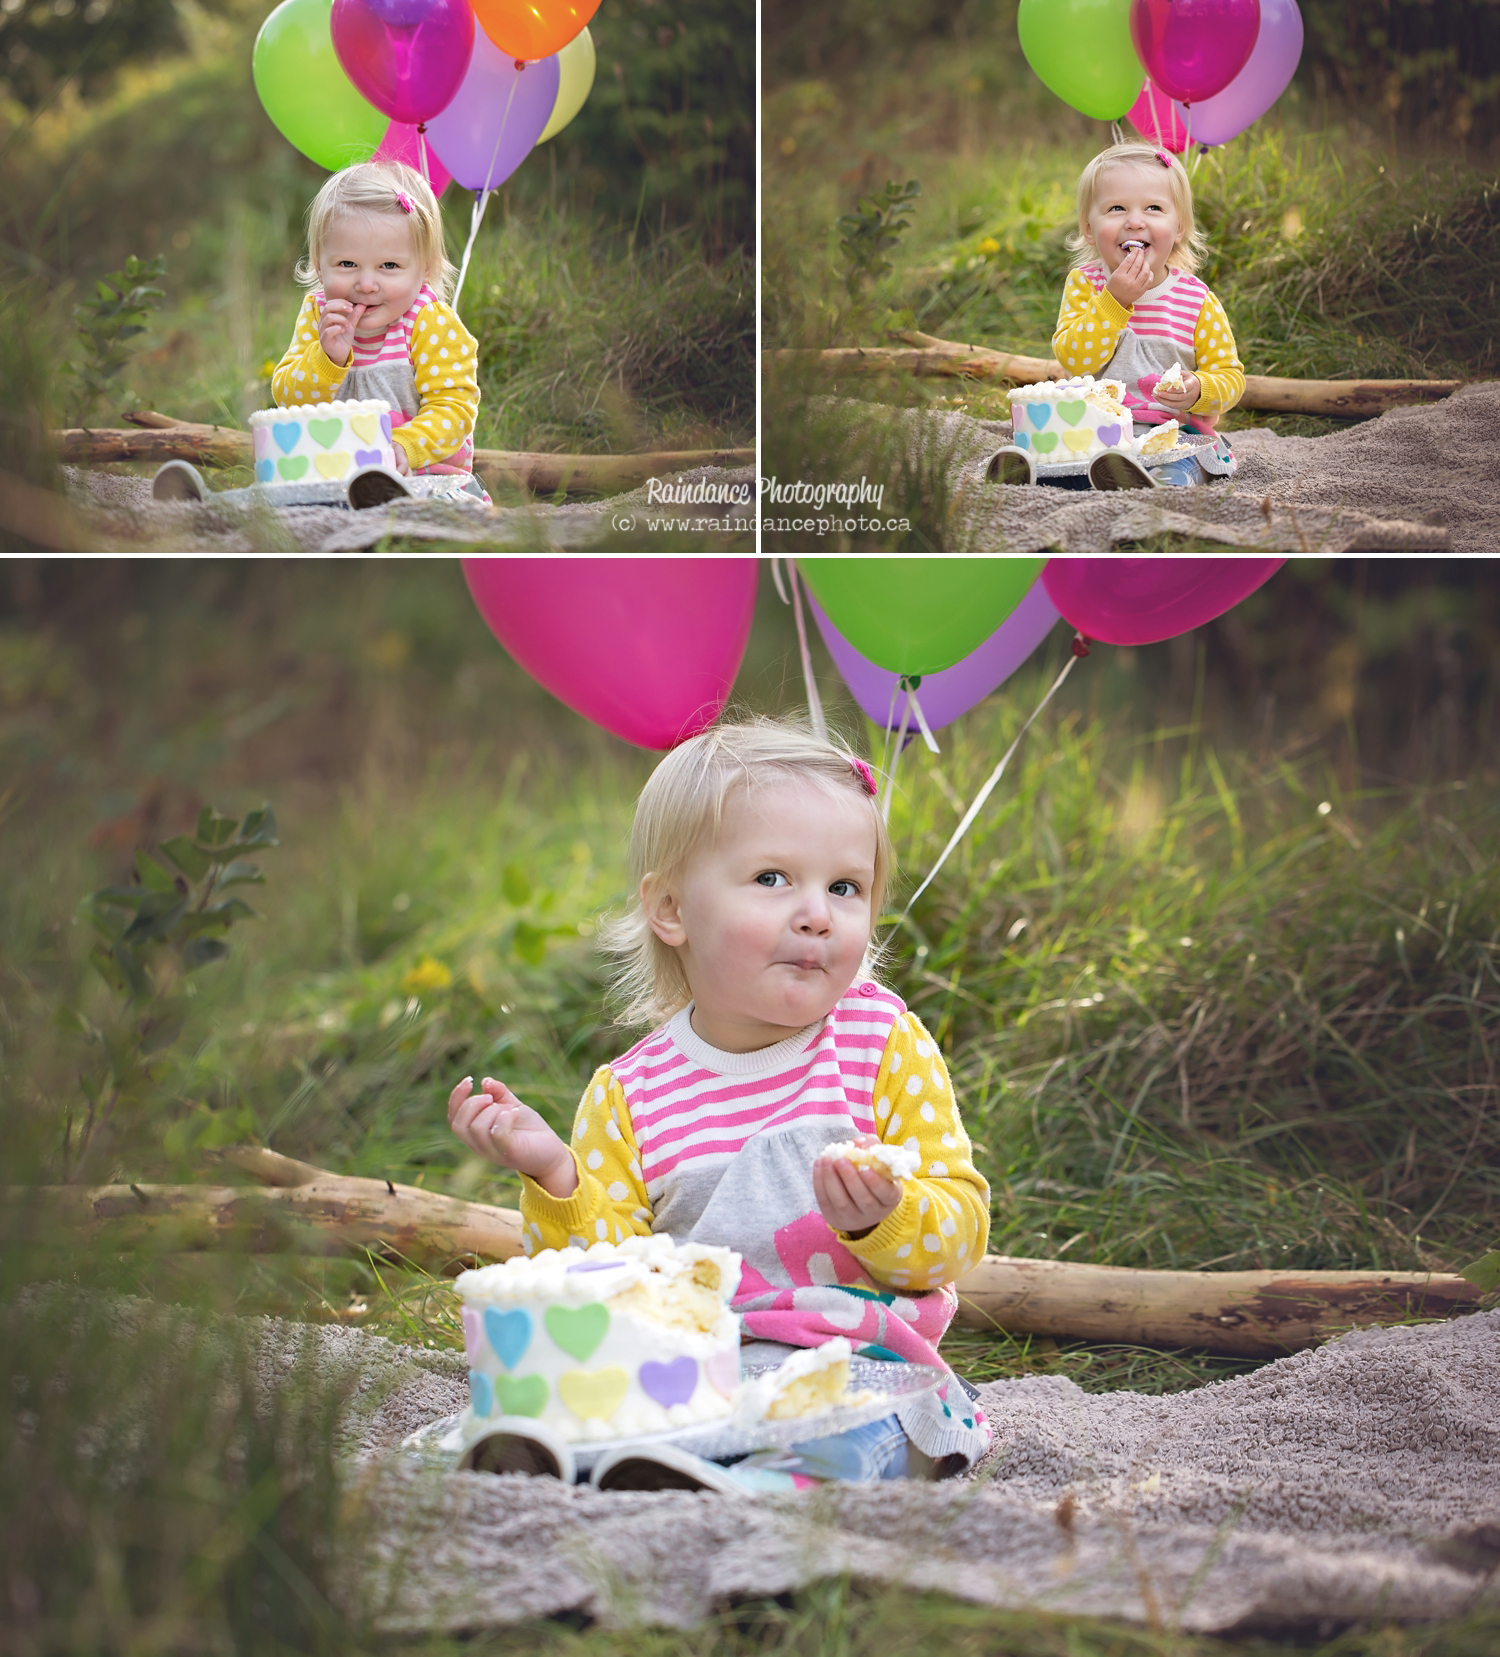 Ellie's Cake Smash Session - Barrie Child and Family Photographer 2